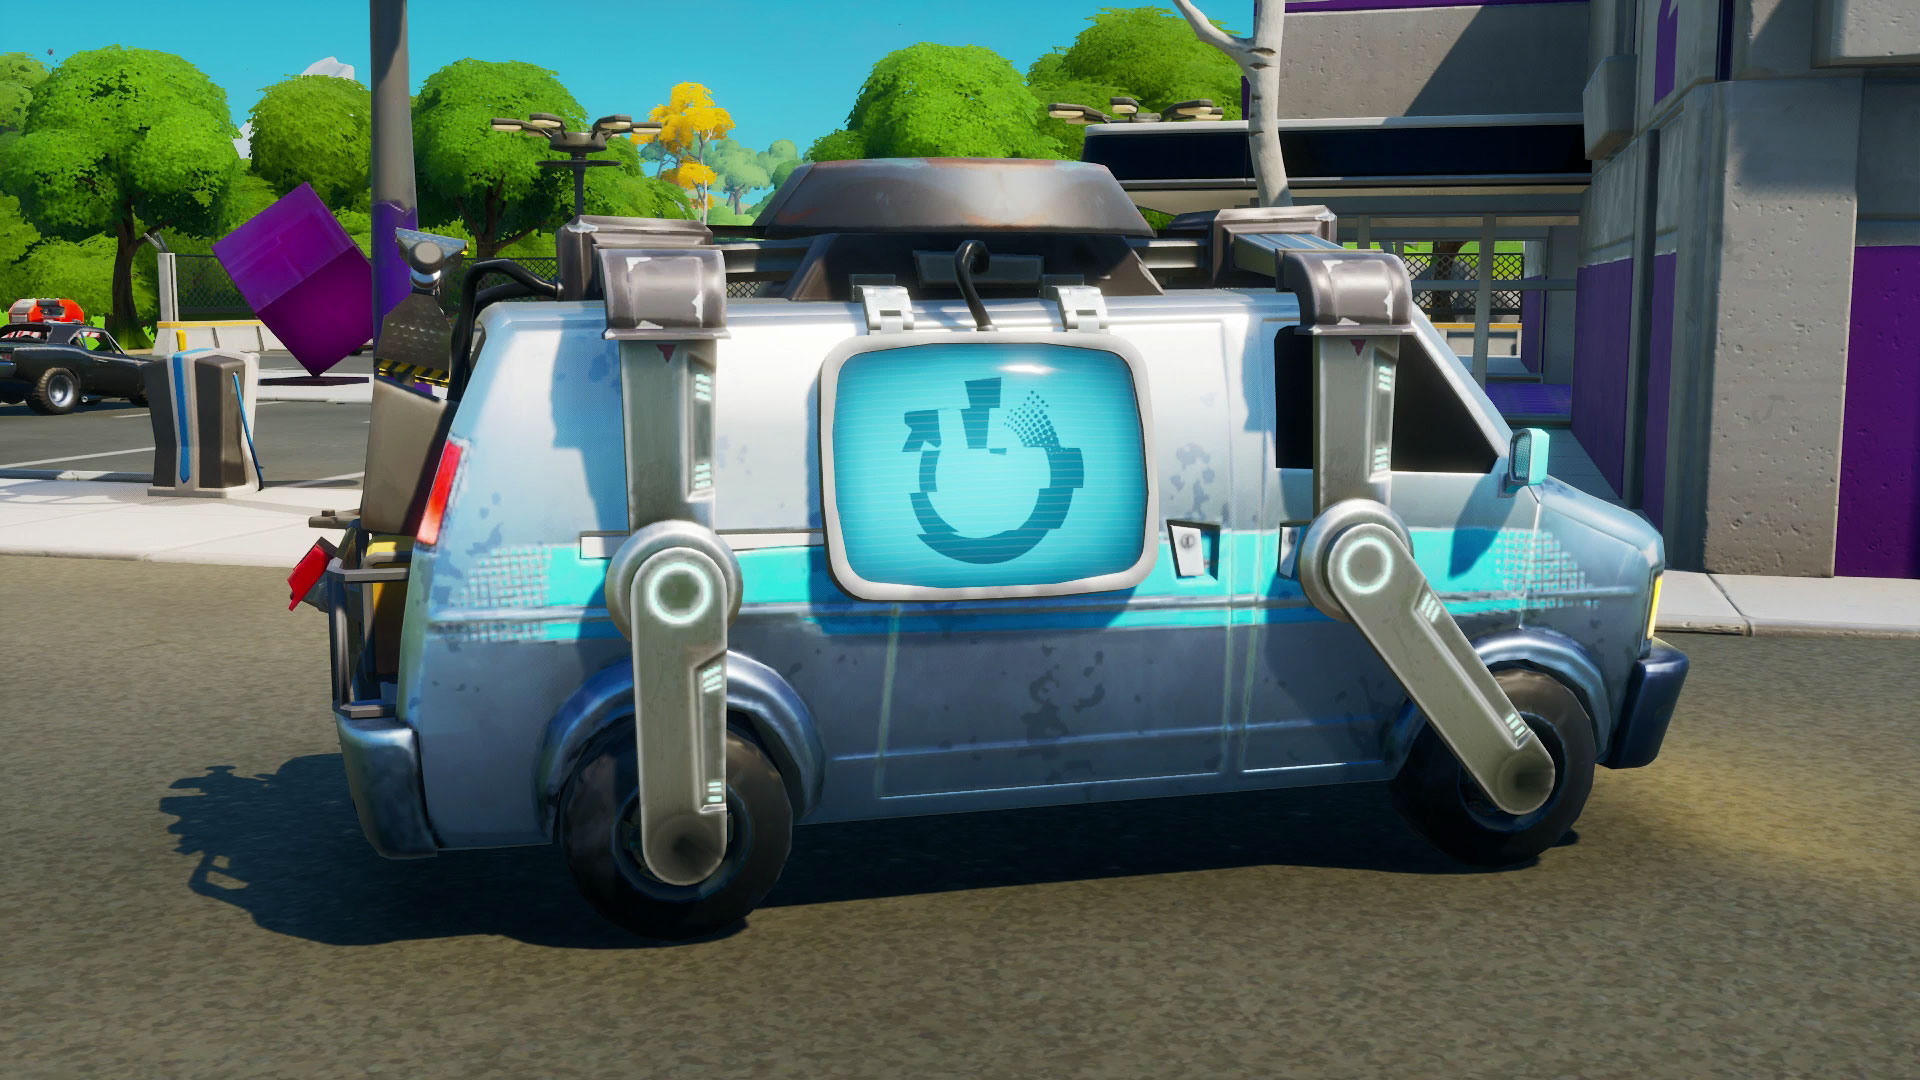 Fortnite Reboot Van Locations All Of The Areas Where You Can